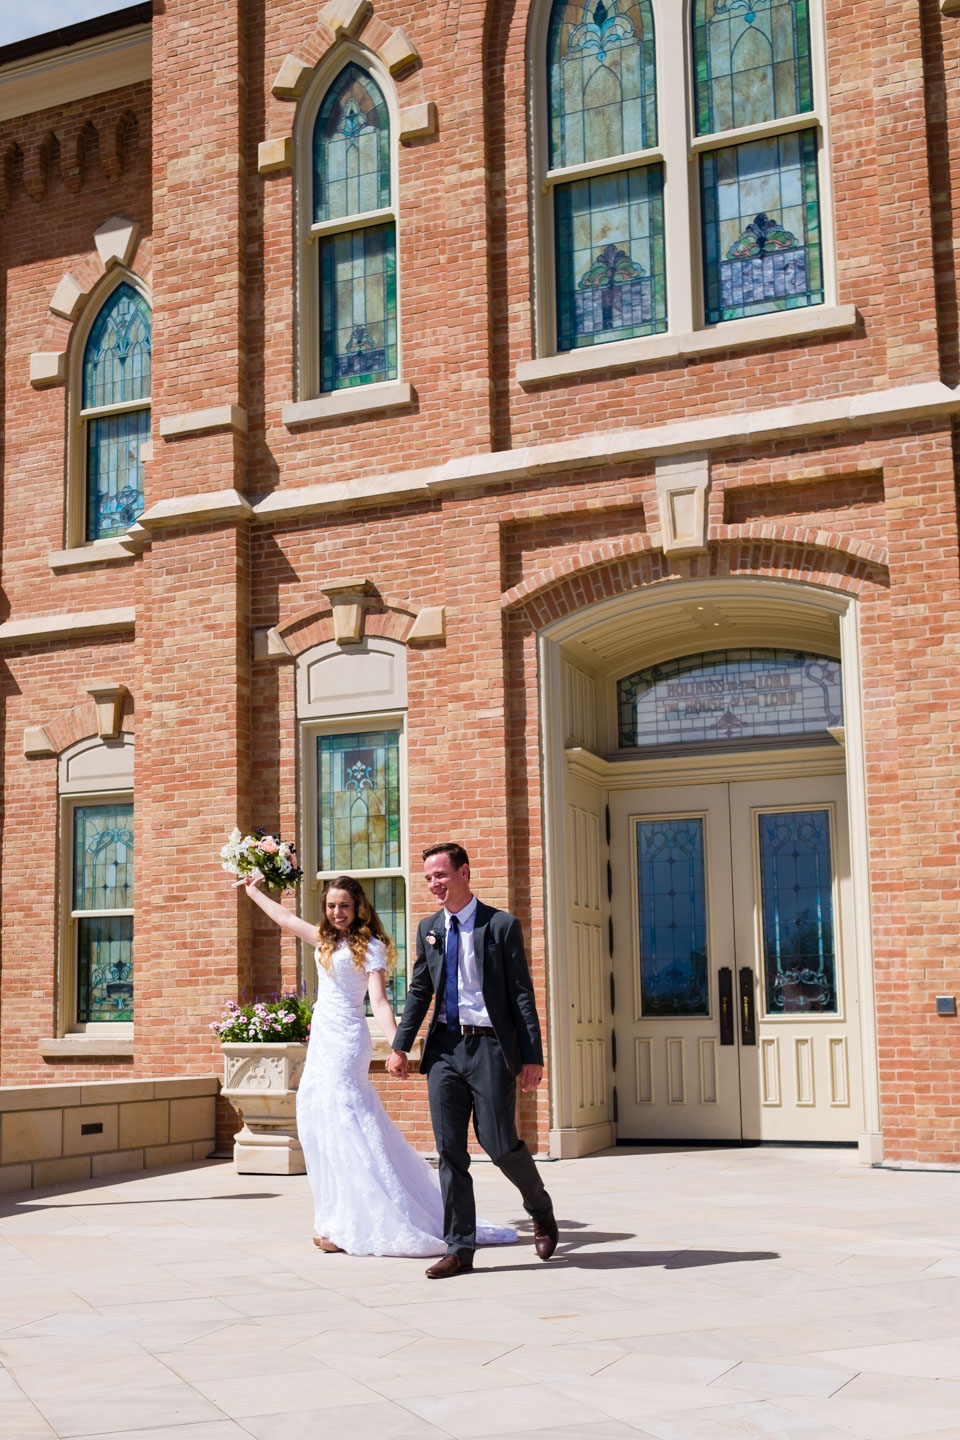 The bride and groom leave the Provo City Center Temple